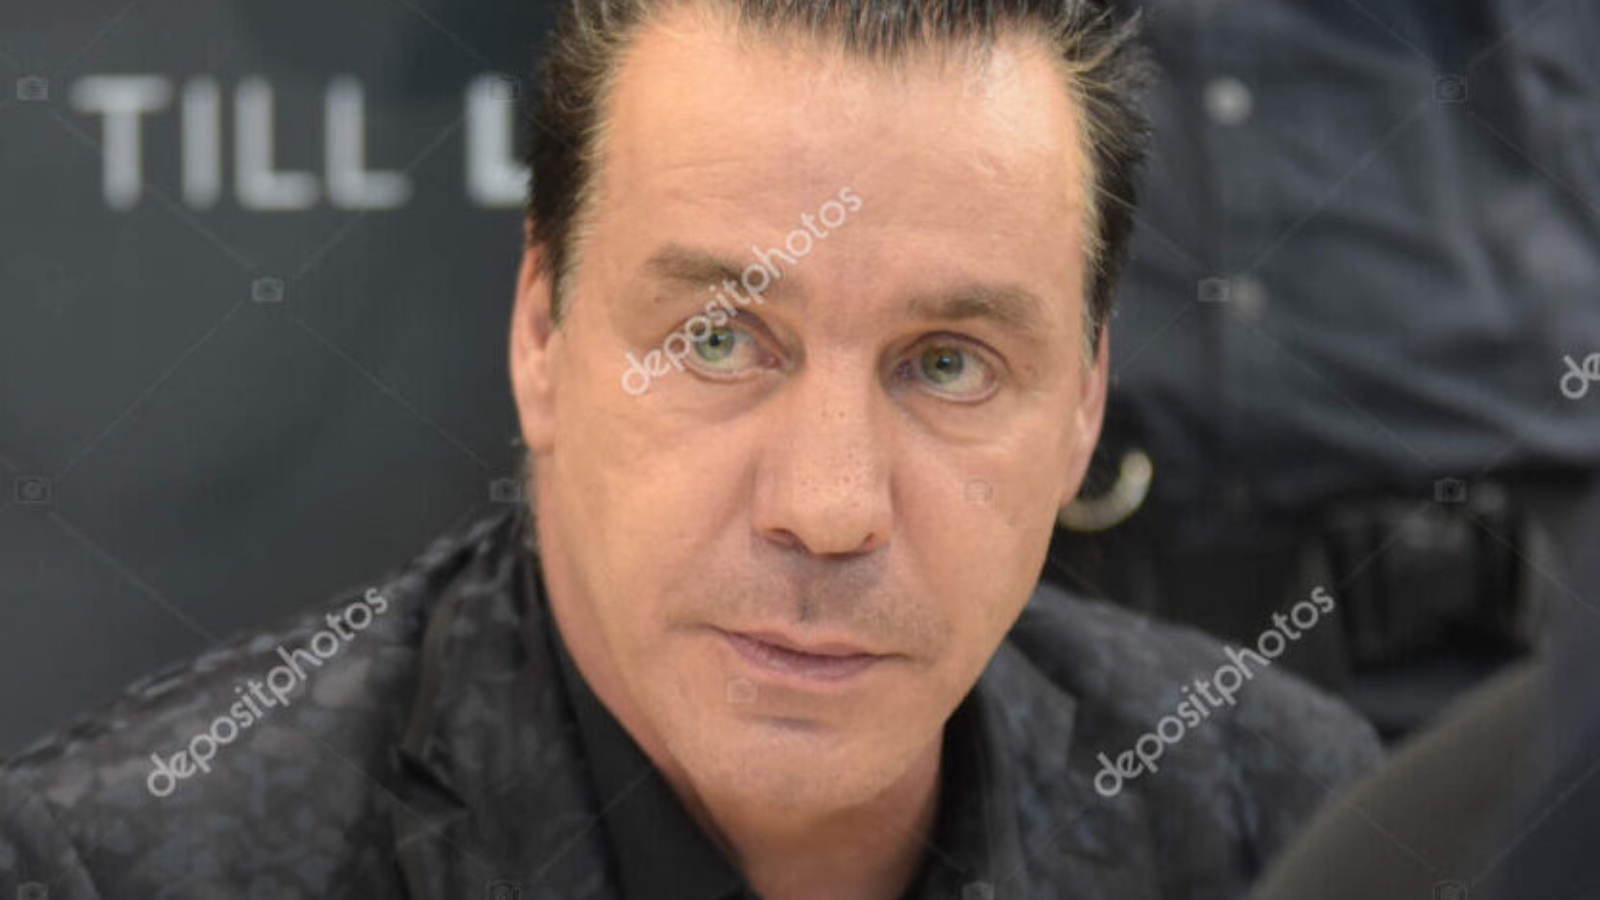 Frankfurt, Germany. 14th Oct, 2017. Till Lindemann, front singer/songwriter of band Rammstein, at Frankfurt Bookfair / Buchmesse Frankfurt 2017